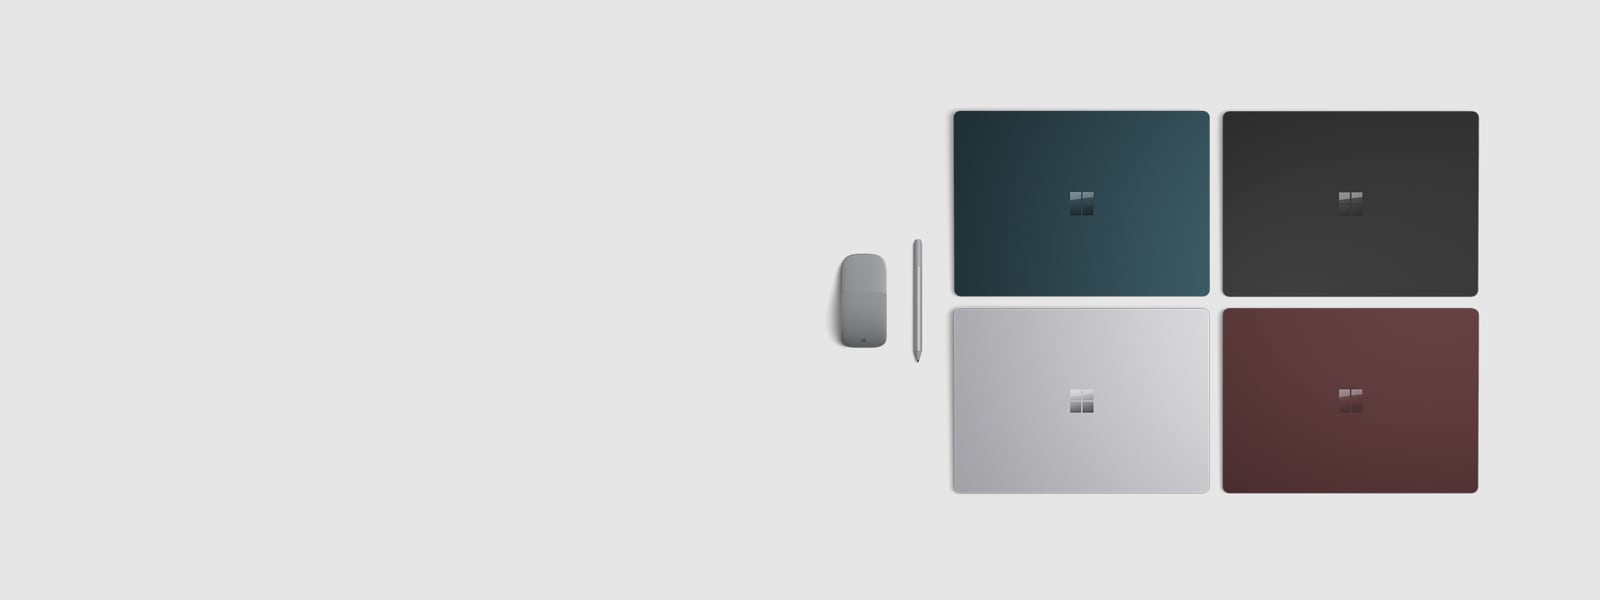 Surface Laptop 2 and Surface accessories